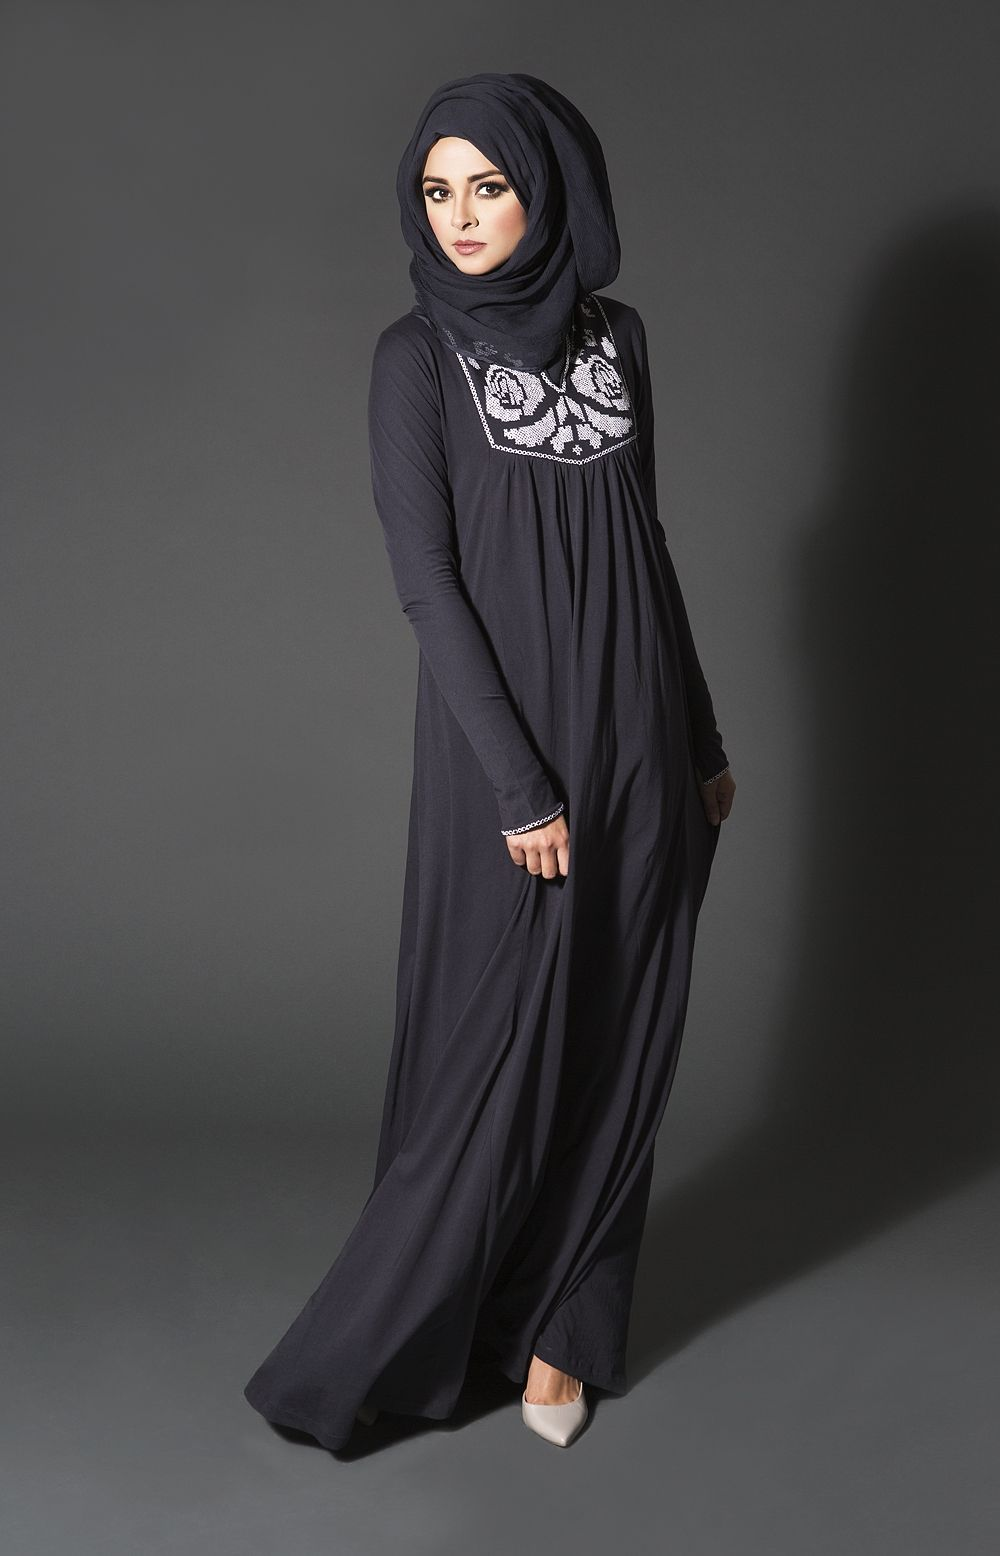 aab Rose abaya Abaya Cross embroideryedit Holic Stitch wgqtTFO